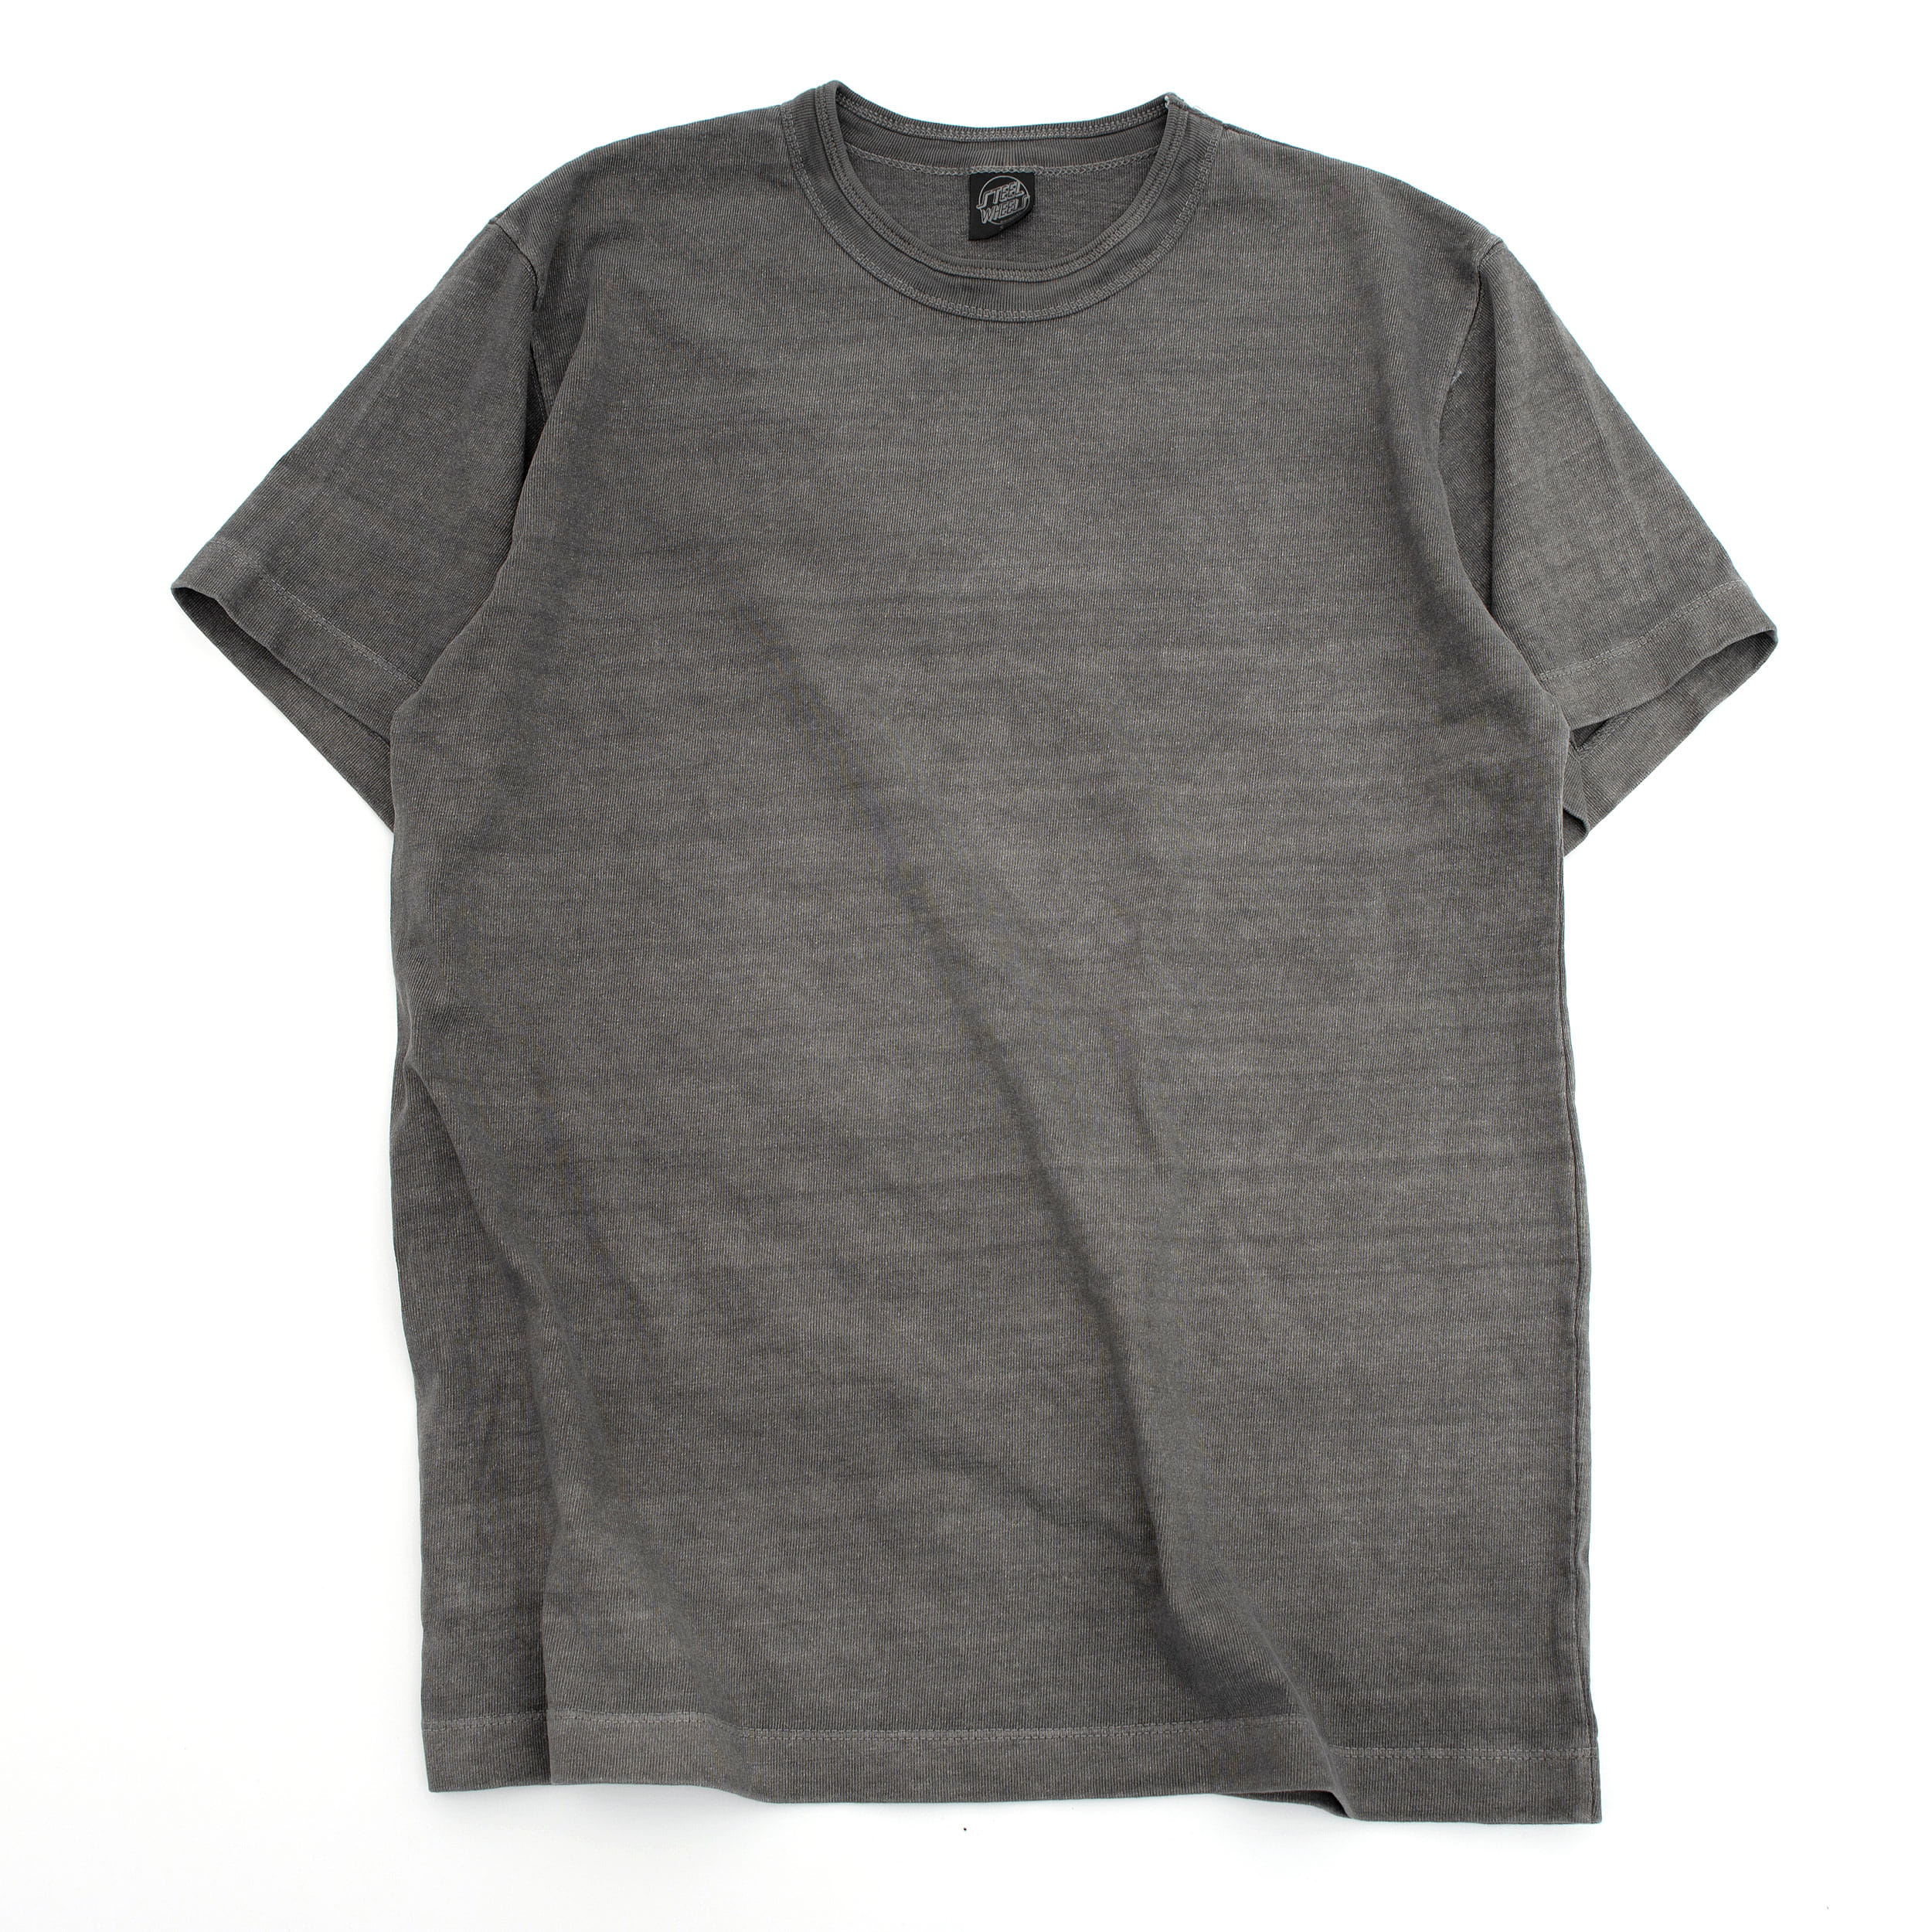 SUMMER DYED BASIC T SHIRT (GRAY)